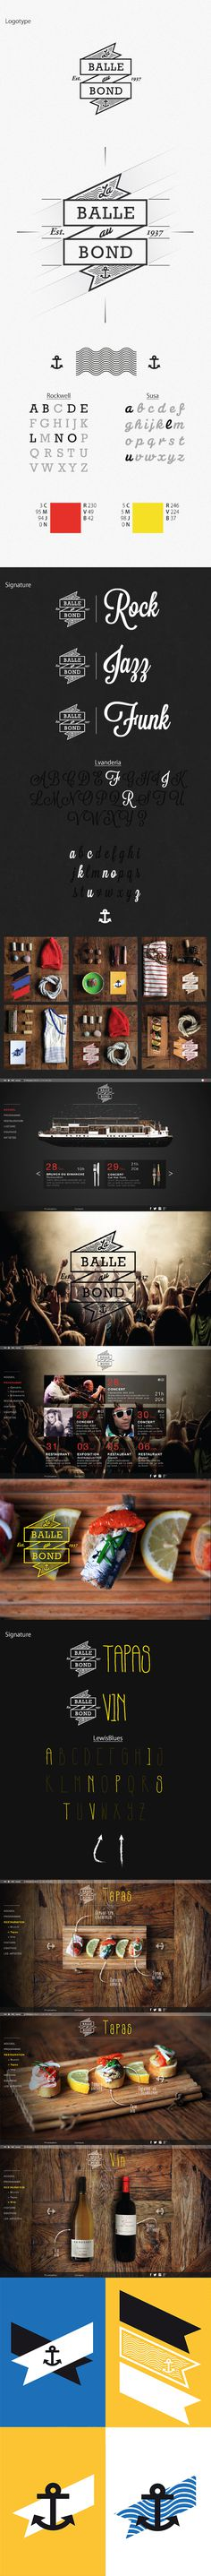 Balle au Bond on Behance #logotype #identity